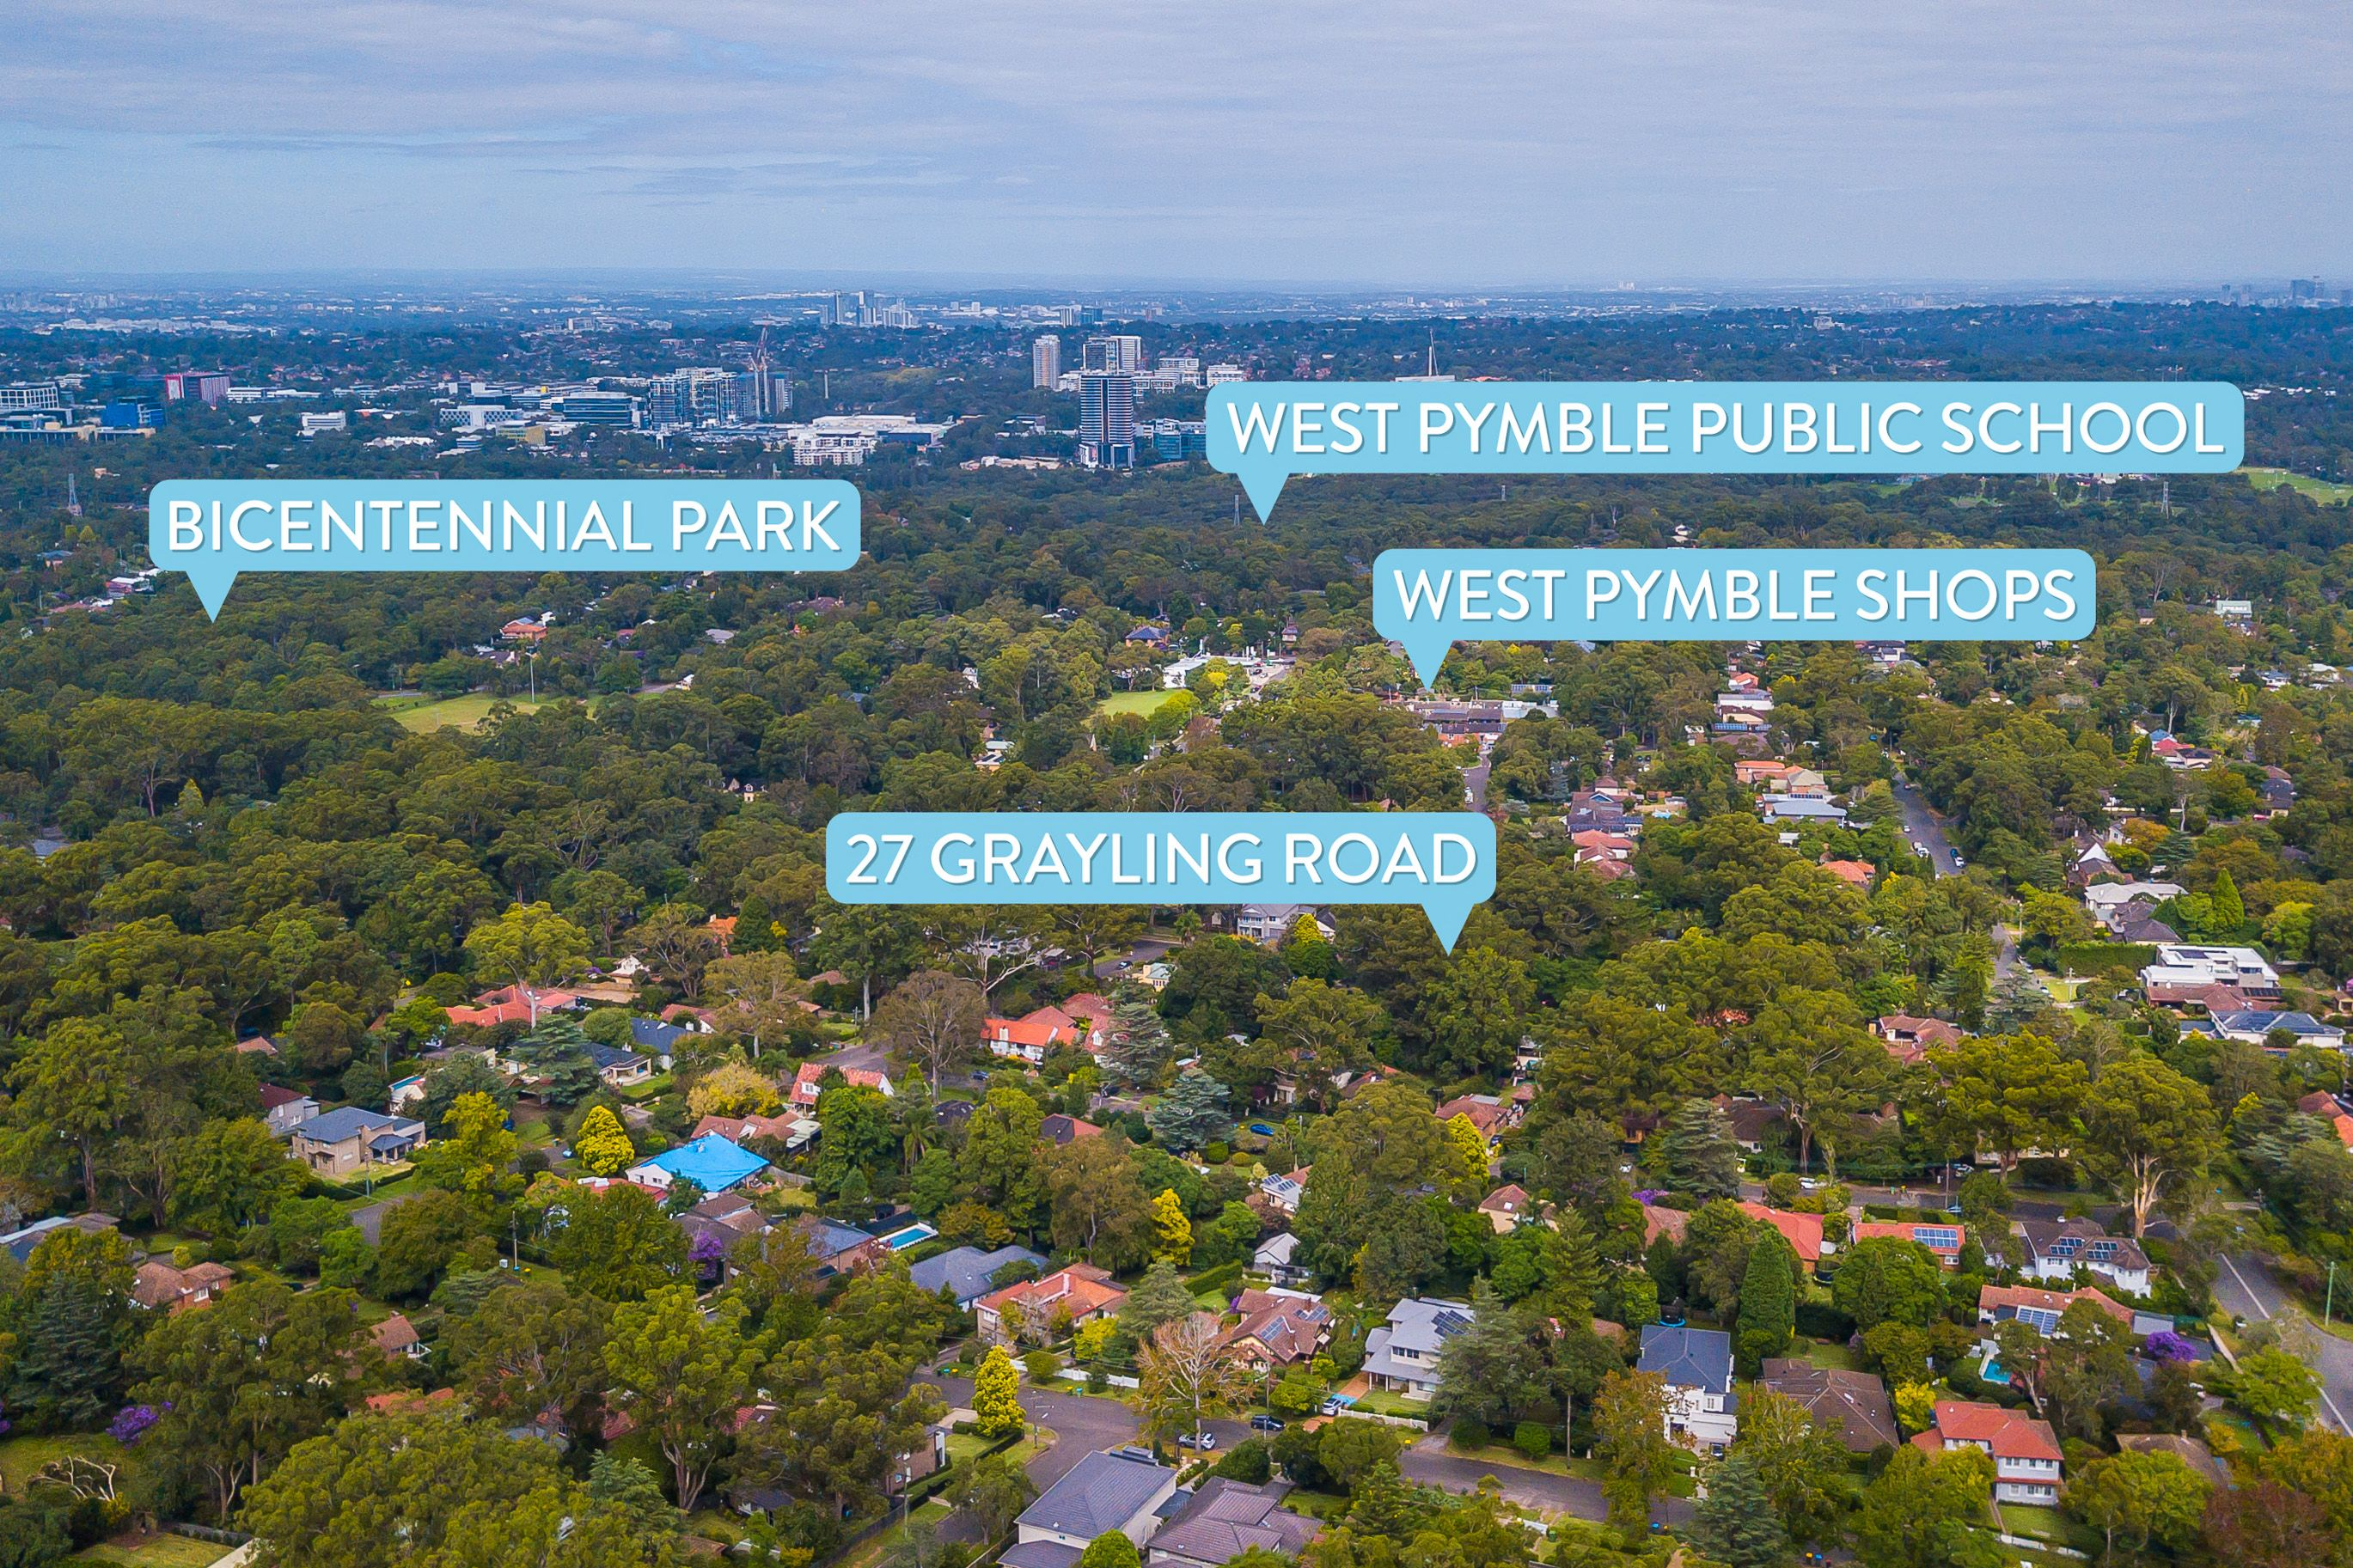 27 Grayling Road West Pymble 2073